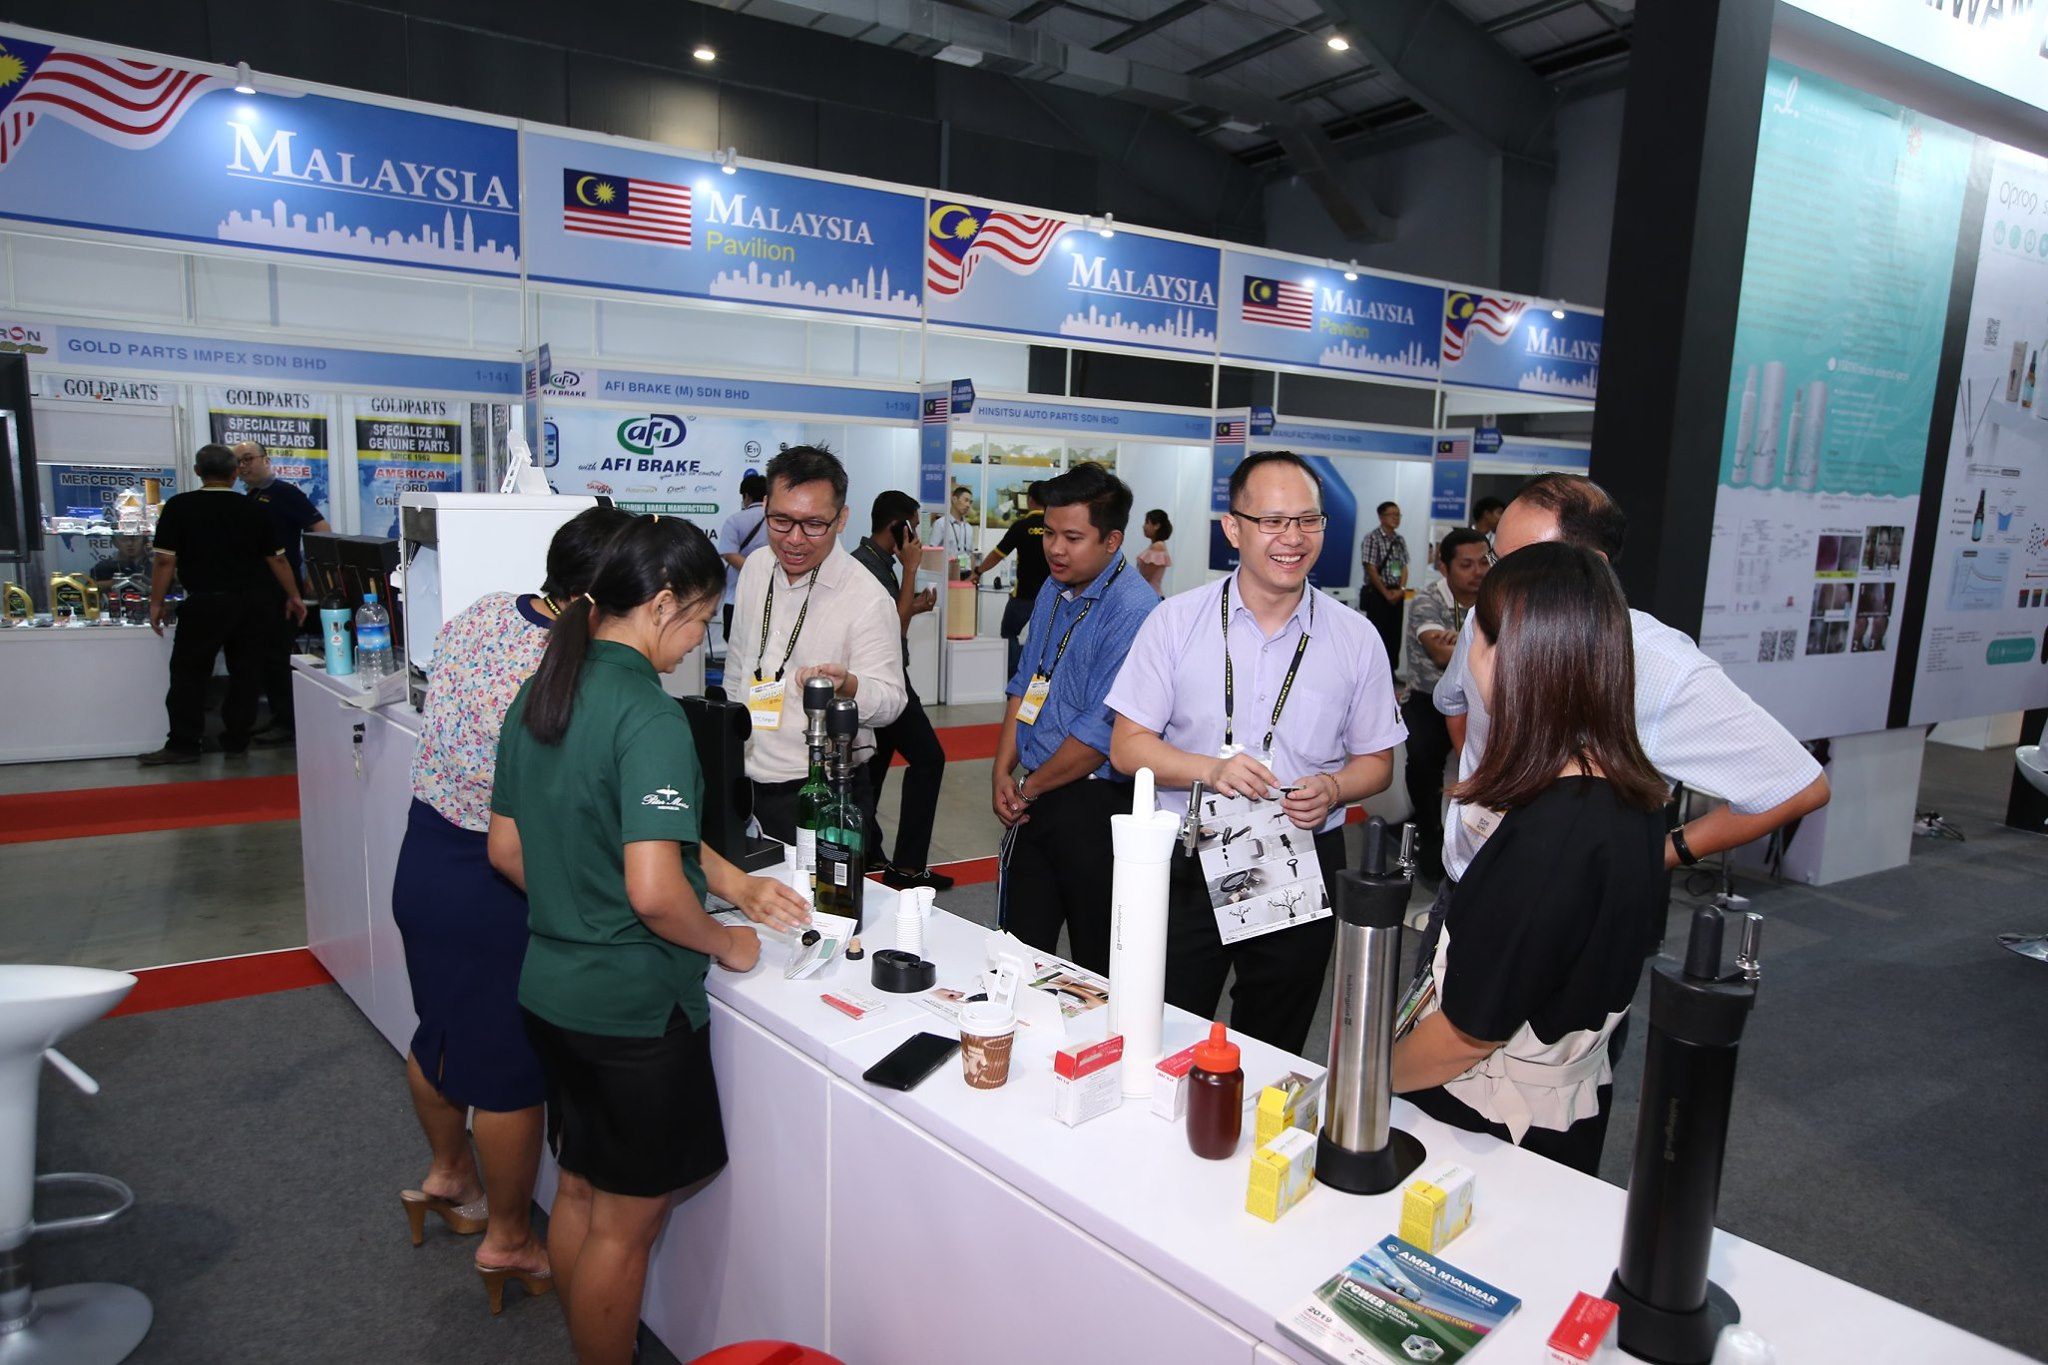 https://storage.googleapis.com/www.taiwantradeshow.com.tw/model/photo/EA/2019/PH00037771-name.jpg